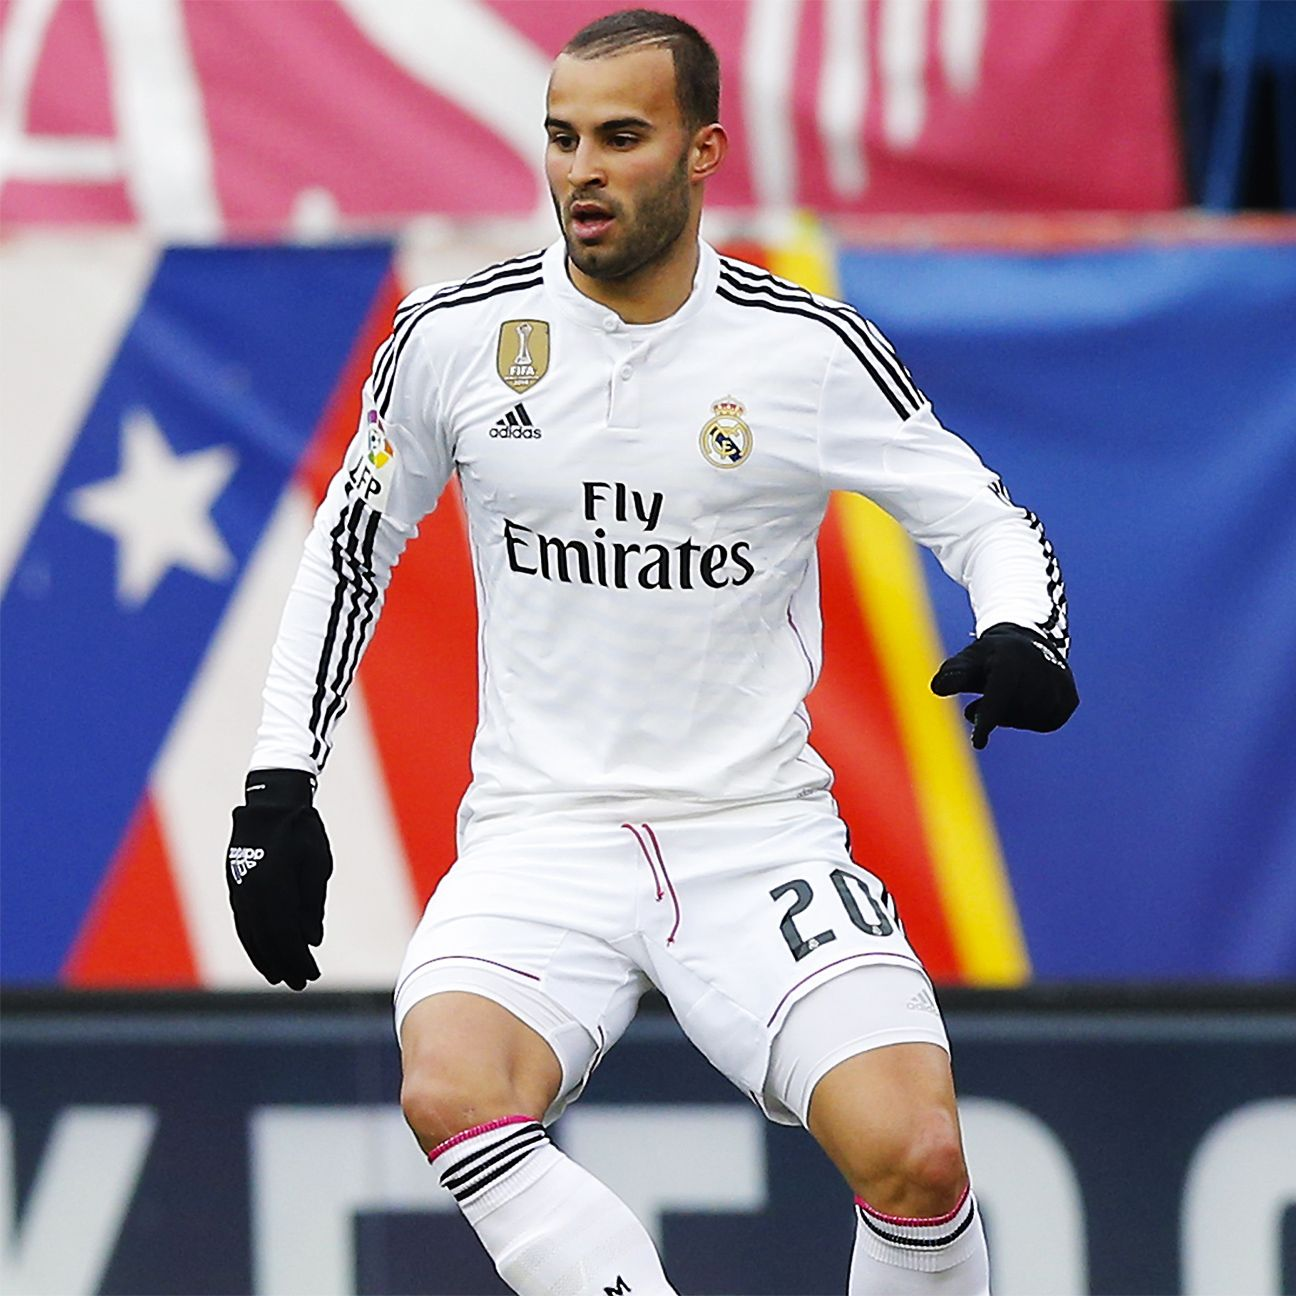 Since returning from injury, Jese Rodriguez's time on the field has been limited.